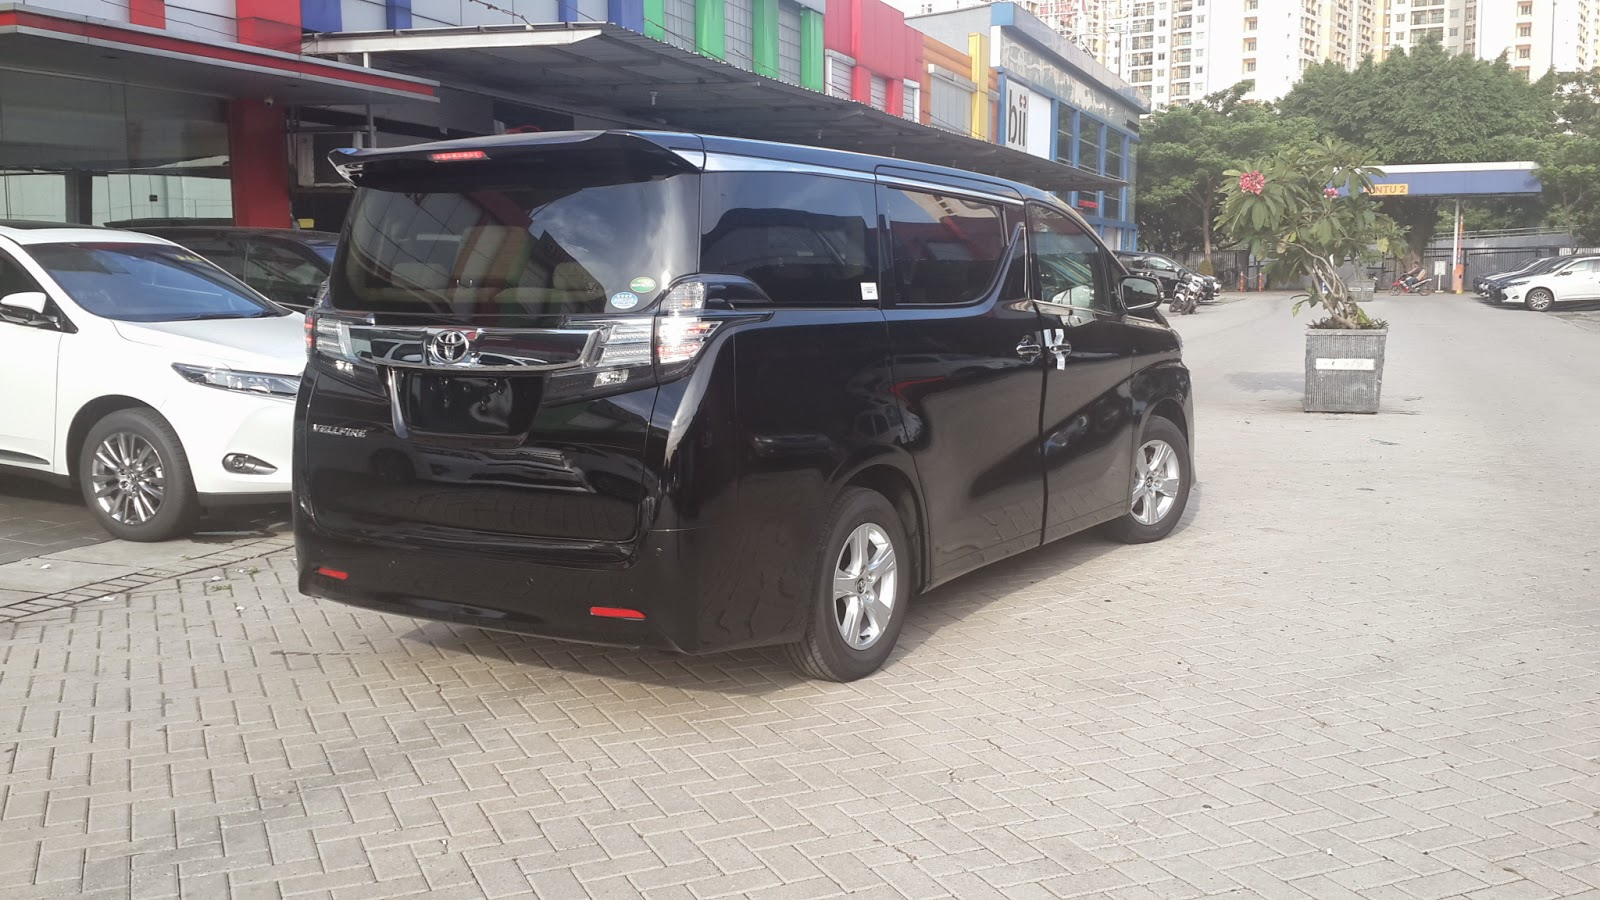 Harga All New Vellfire Grand Avanza Type G 2018 Interior 2017 Mobil Zg Audioless Spesifikasi Dan